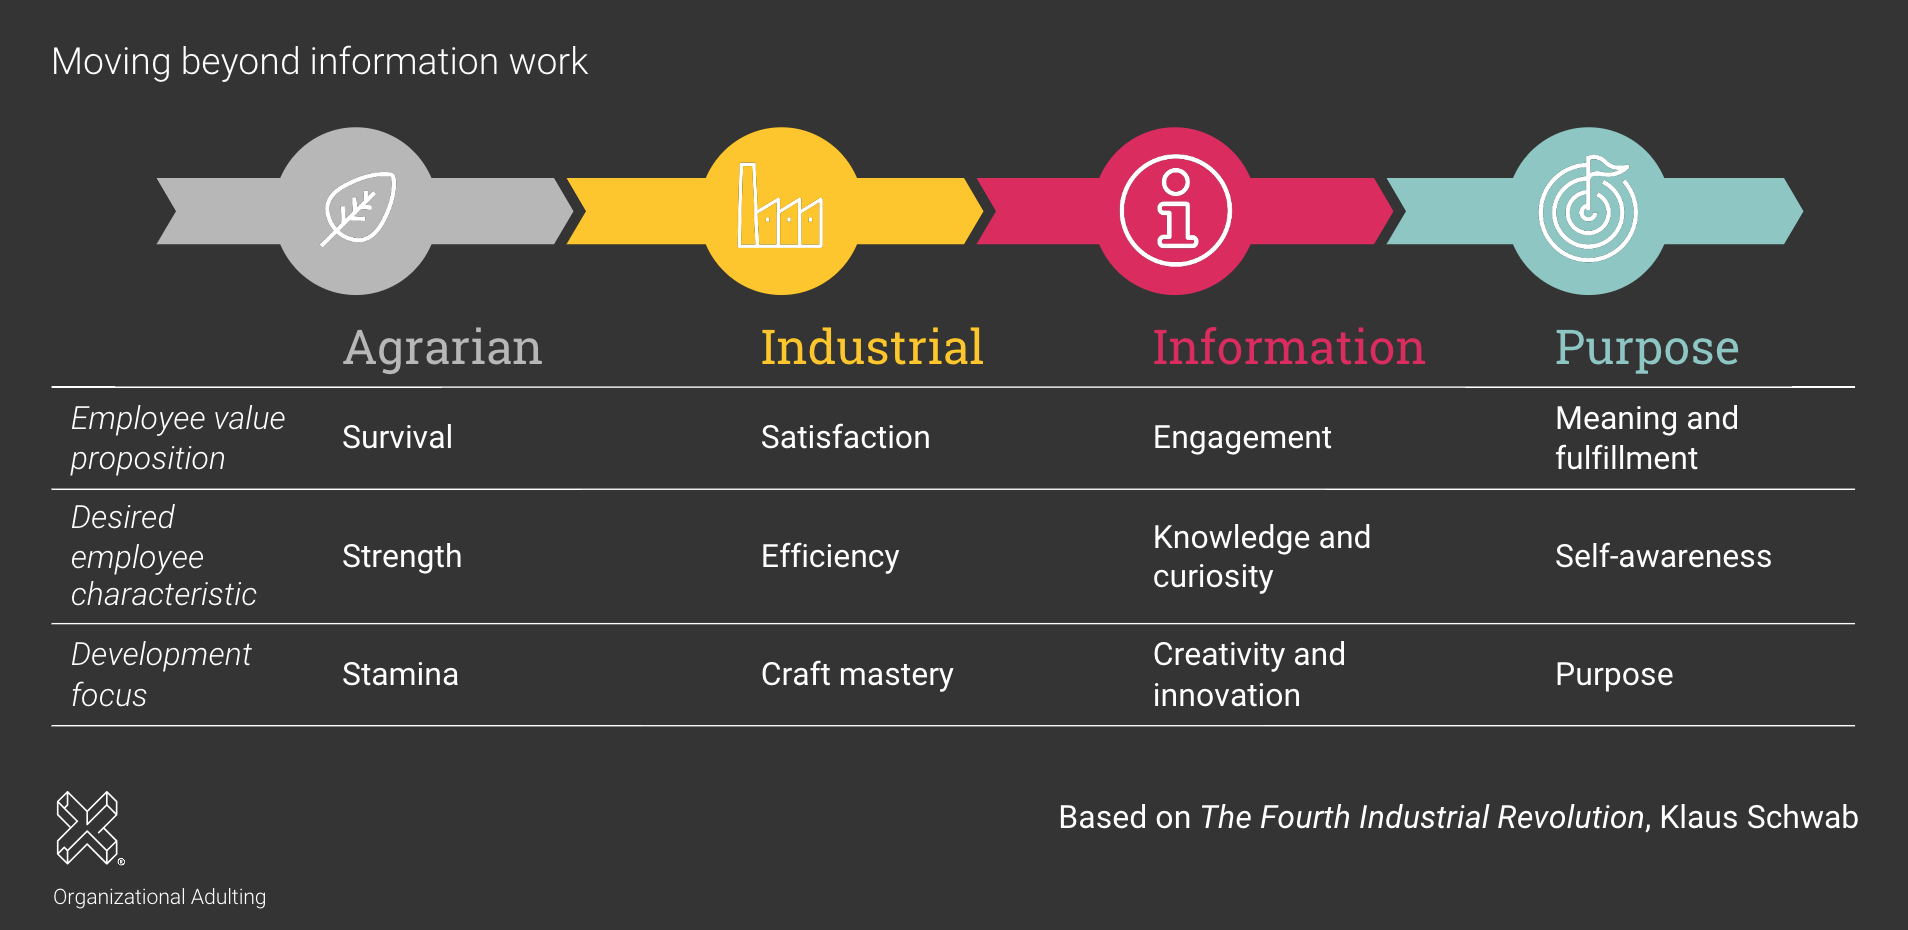 The Fourth Industrial Revolution Visual - Moving Beyond Information Work